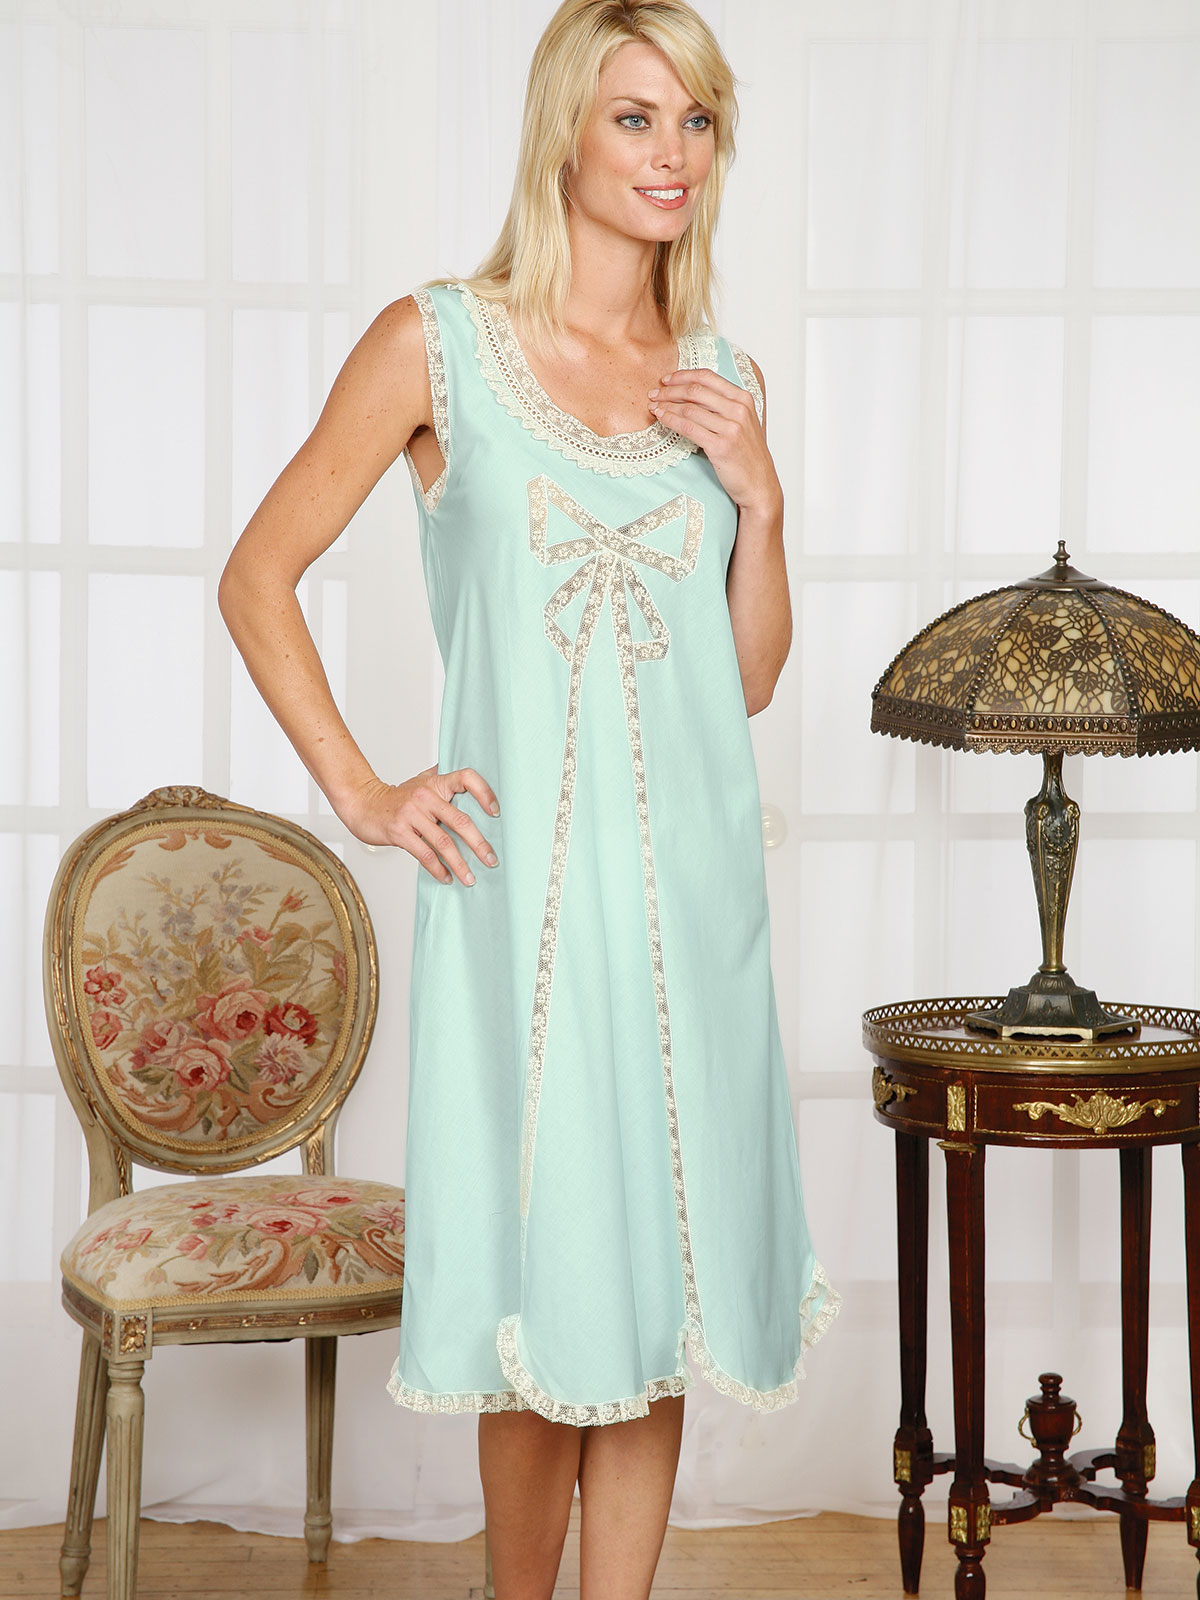 9cf6819869b9 Some Really Beautiful Nightgowns To Make You Look Like an Angel. list by  Patricia Balser 3 years ago. Carla - Luxury Nightwear - Schweitzer Linen